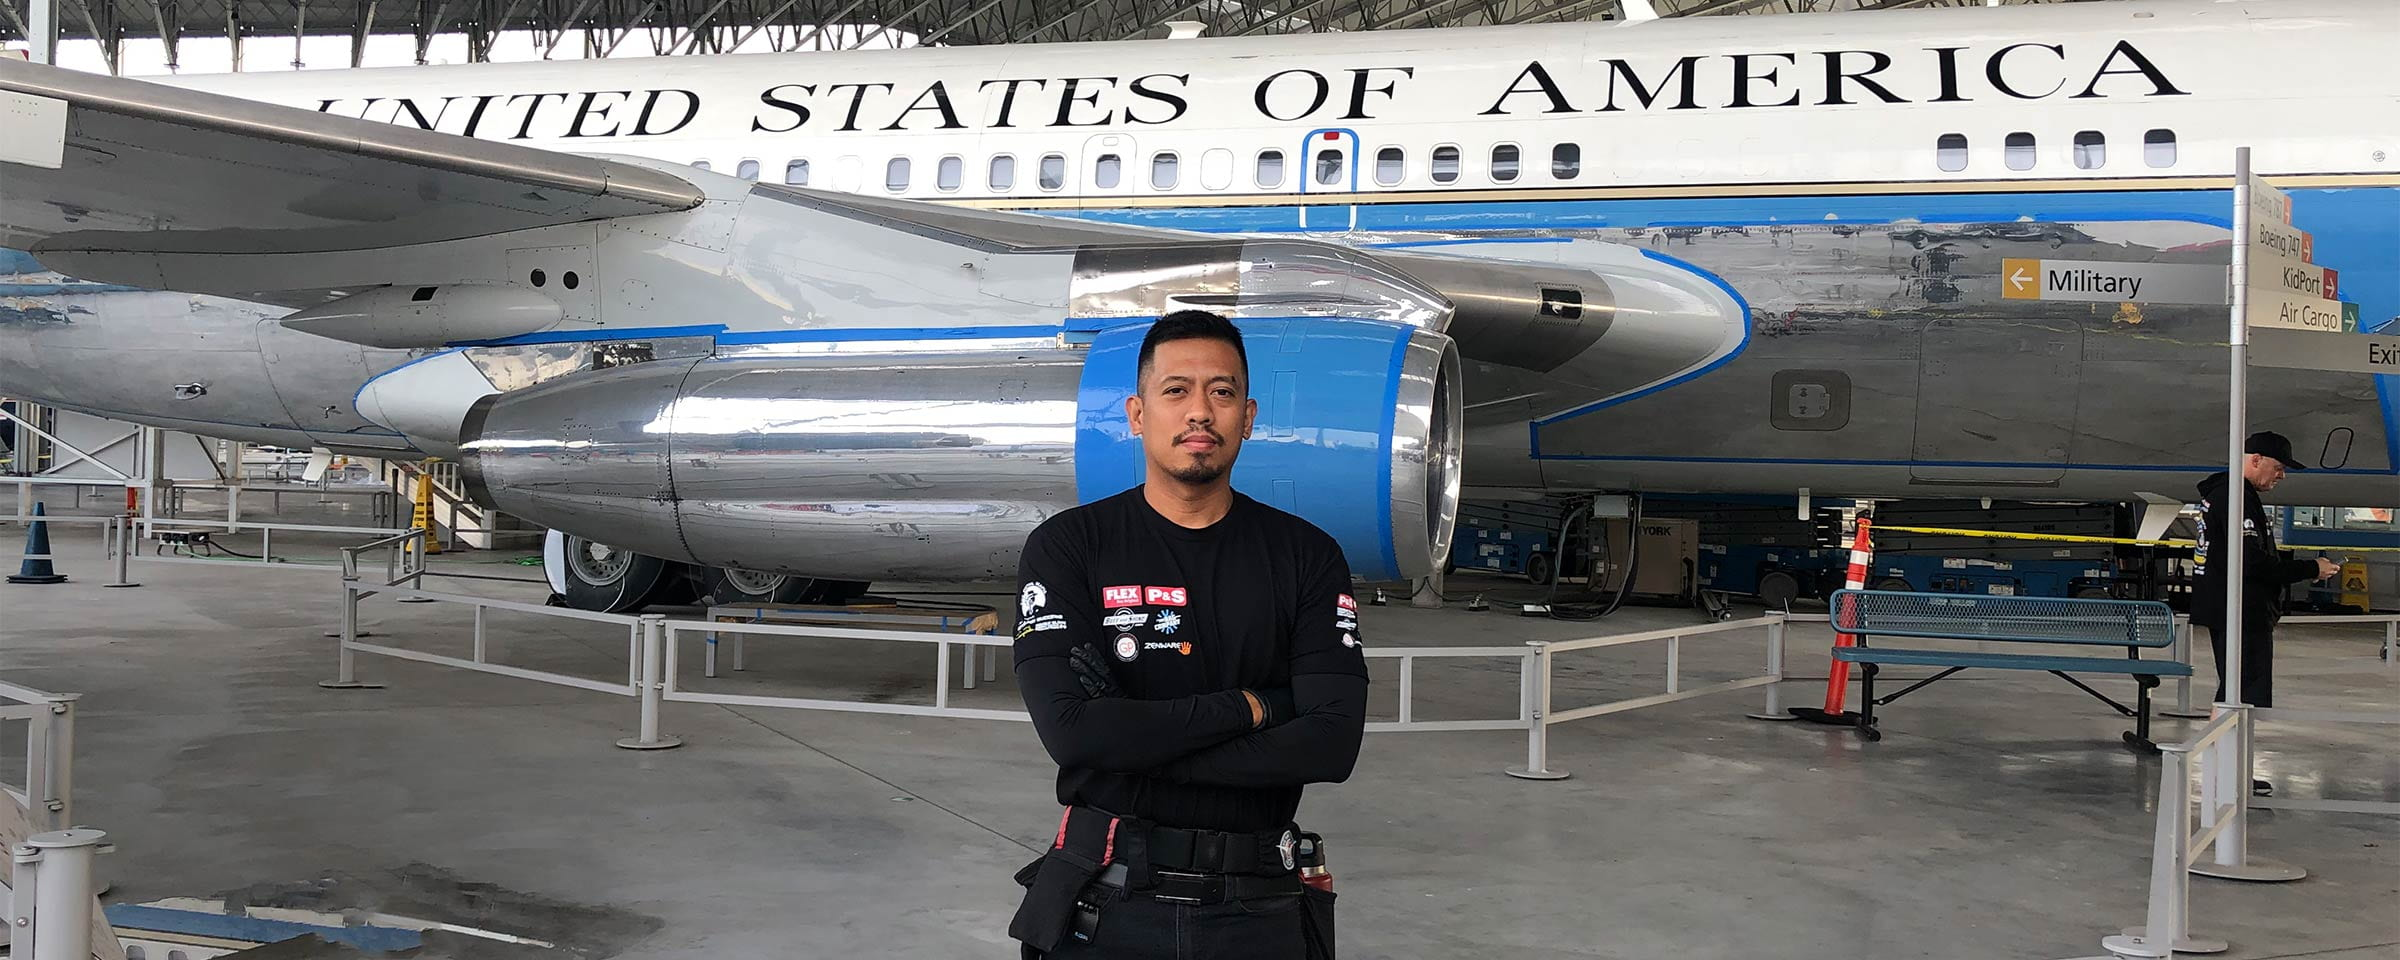 Crisanto Aquino in front of Air Force One